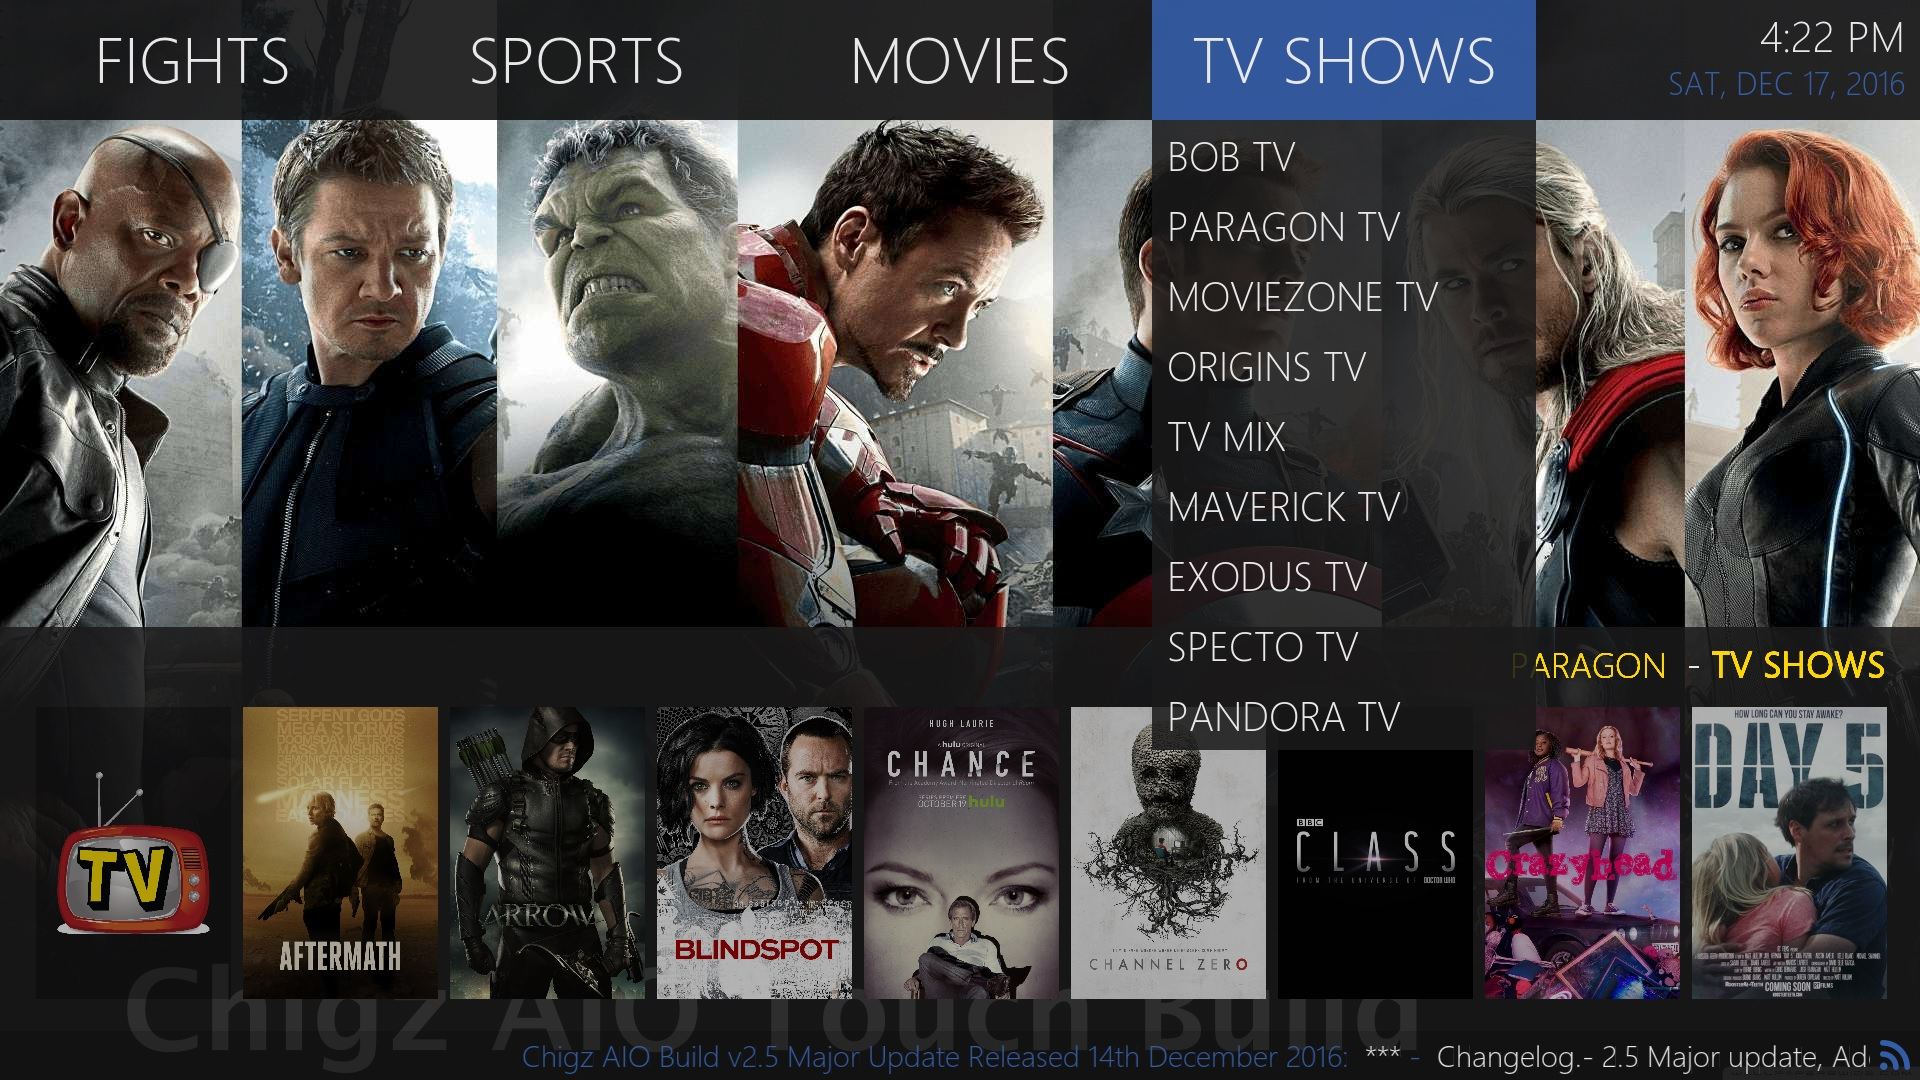 A look at Chigz AIO Touch Build in Kodi